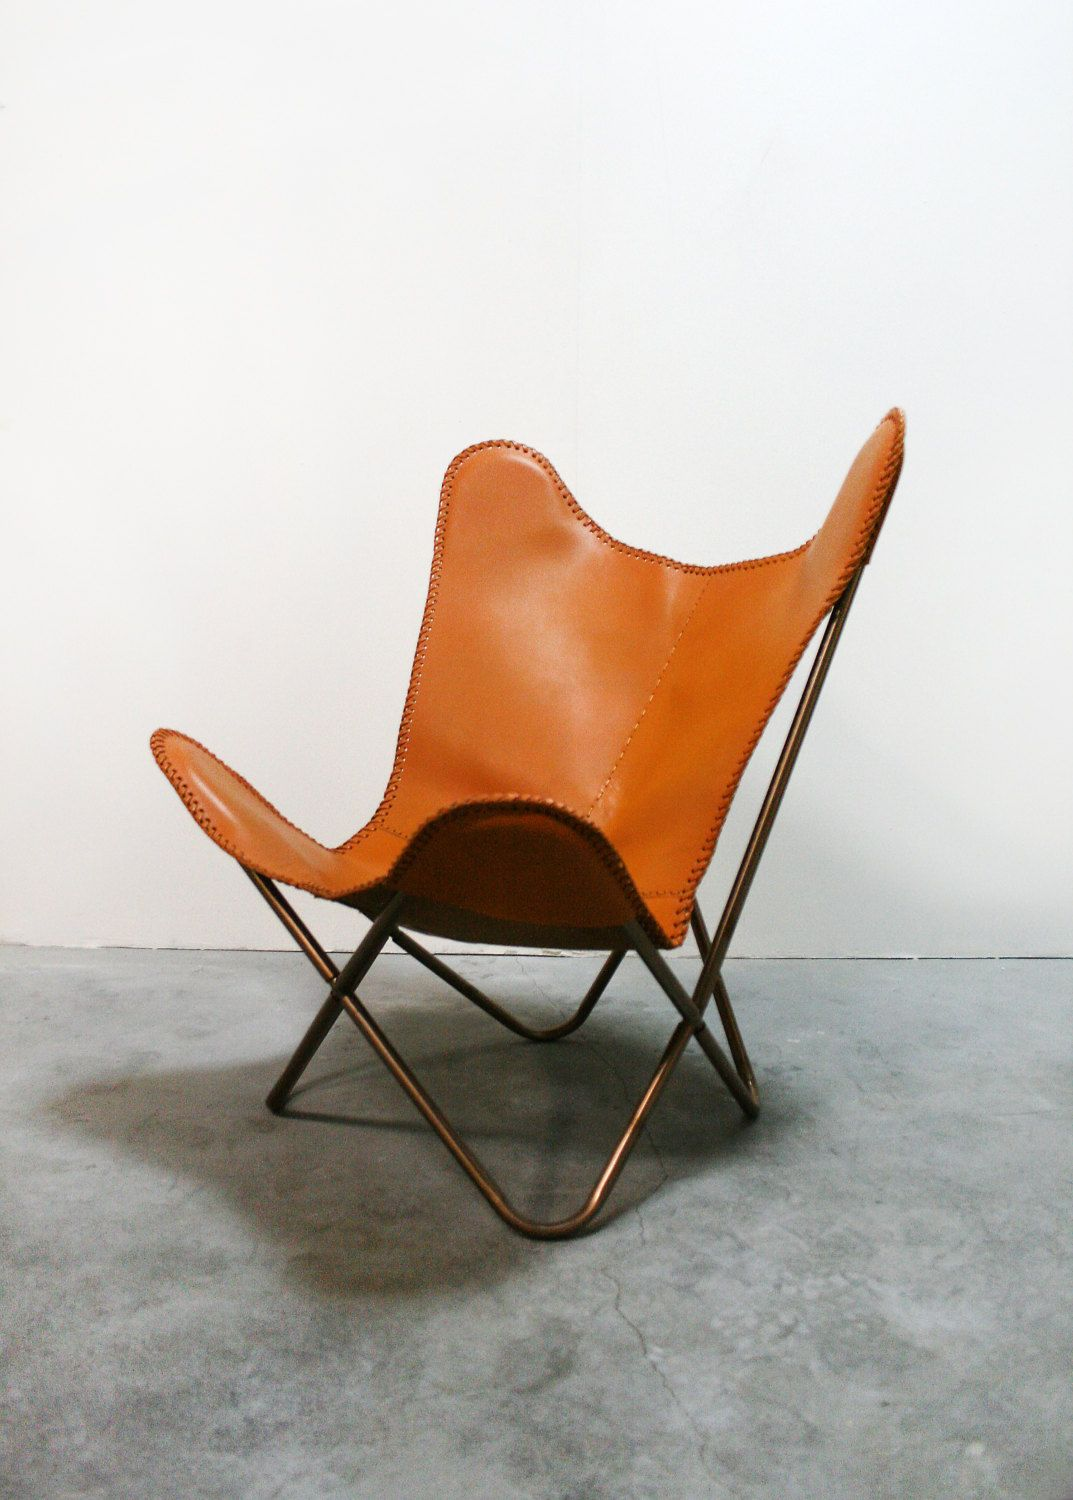 Butterfly Chair Knoll Vintage Handmade Orange Tan Leather Butterfly Chair Knoll Hardoy